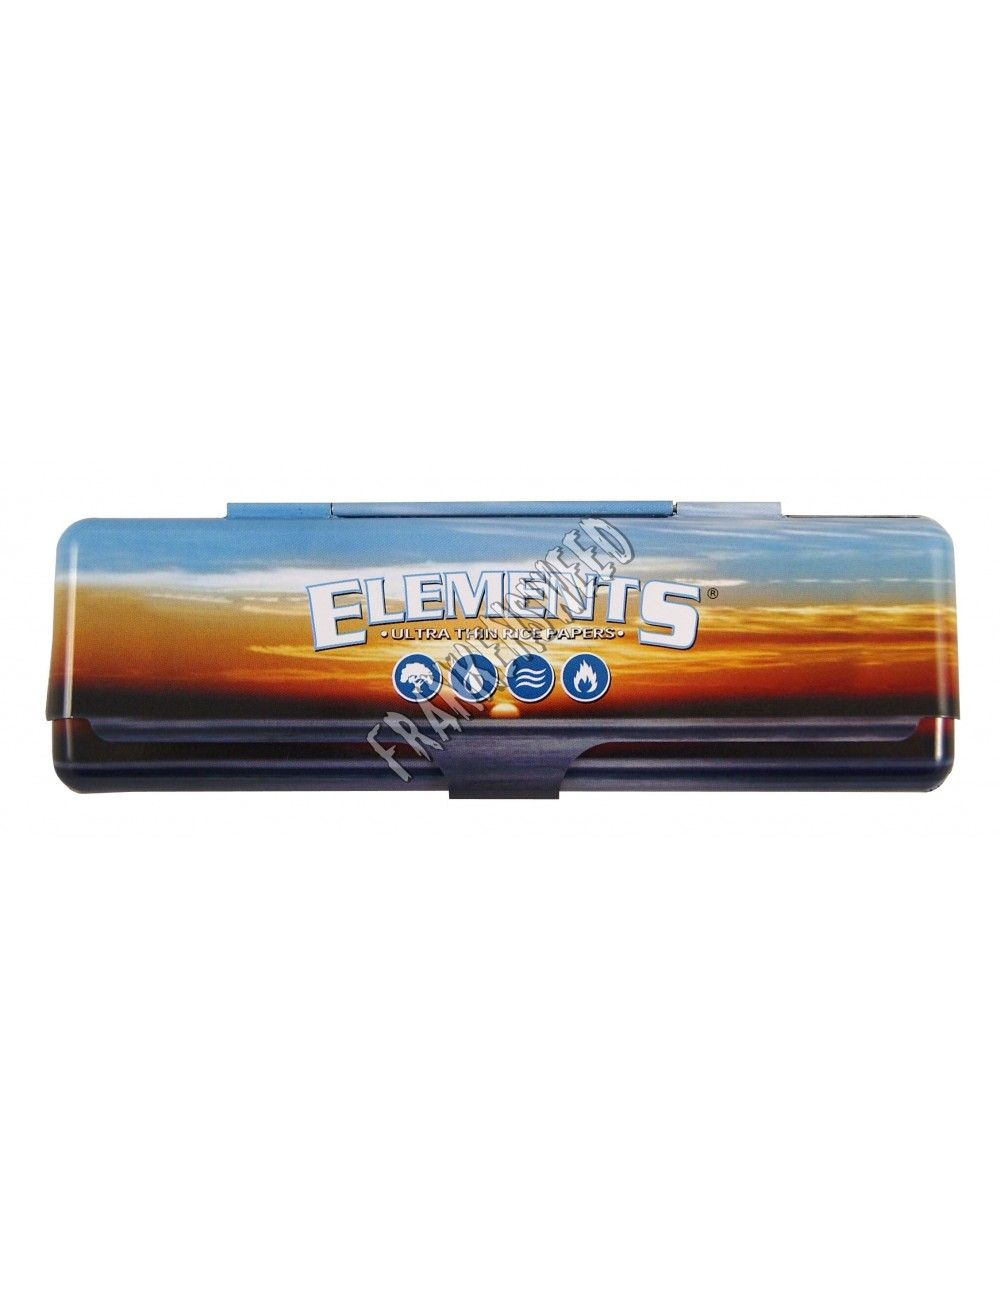 Elements King Size Slim Metal Case